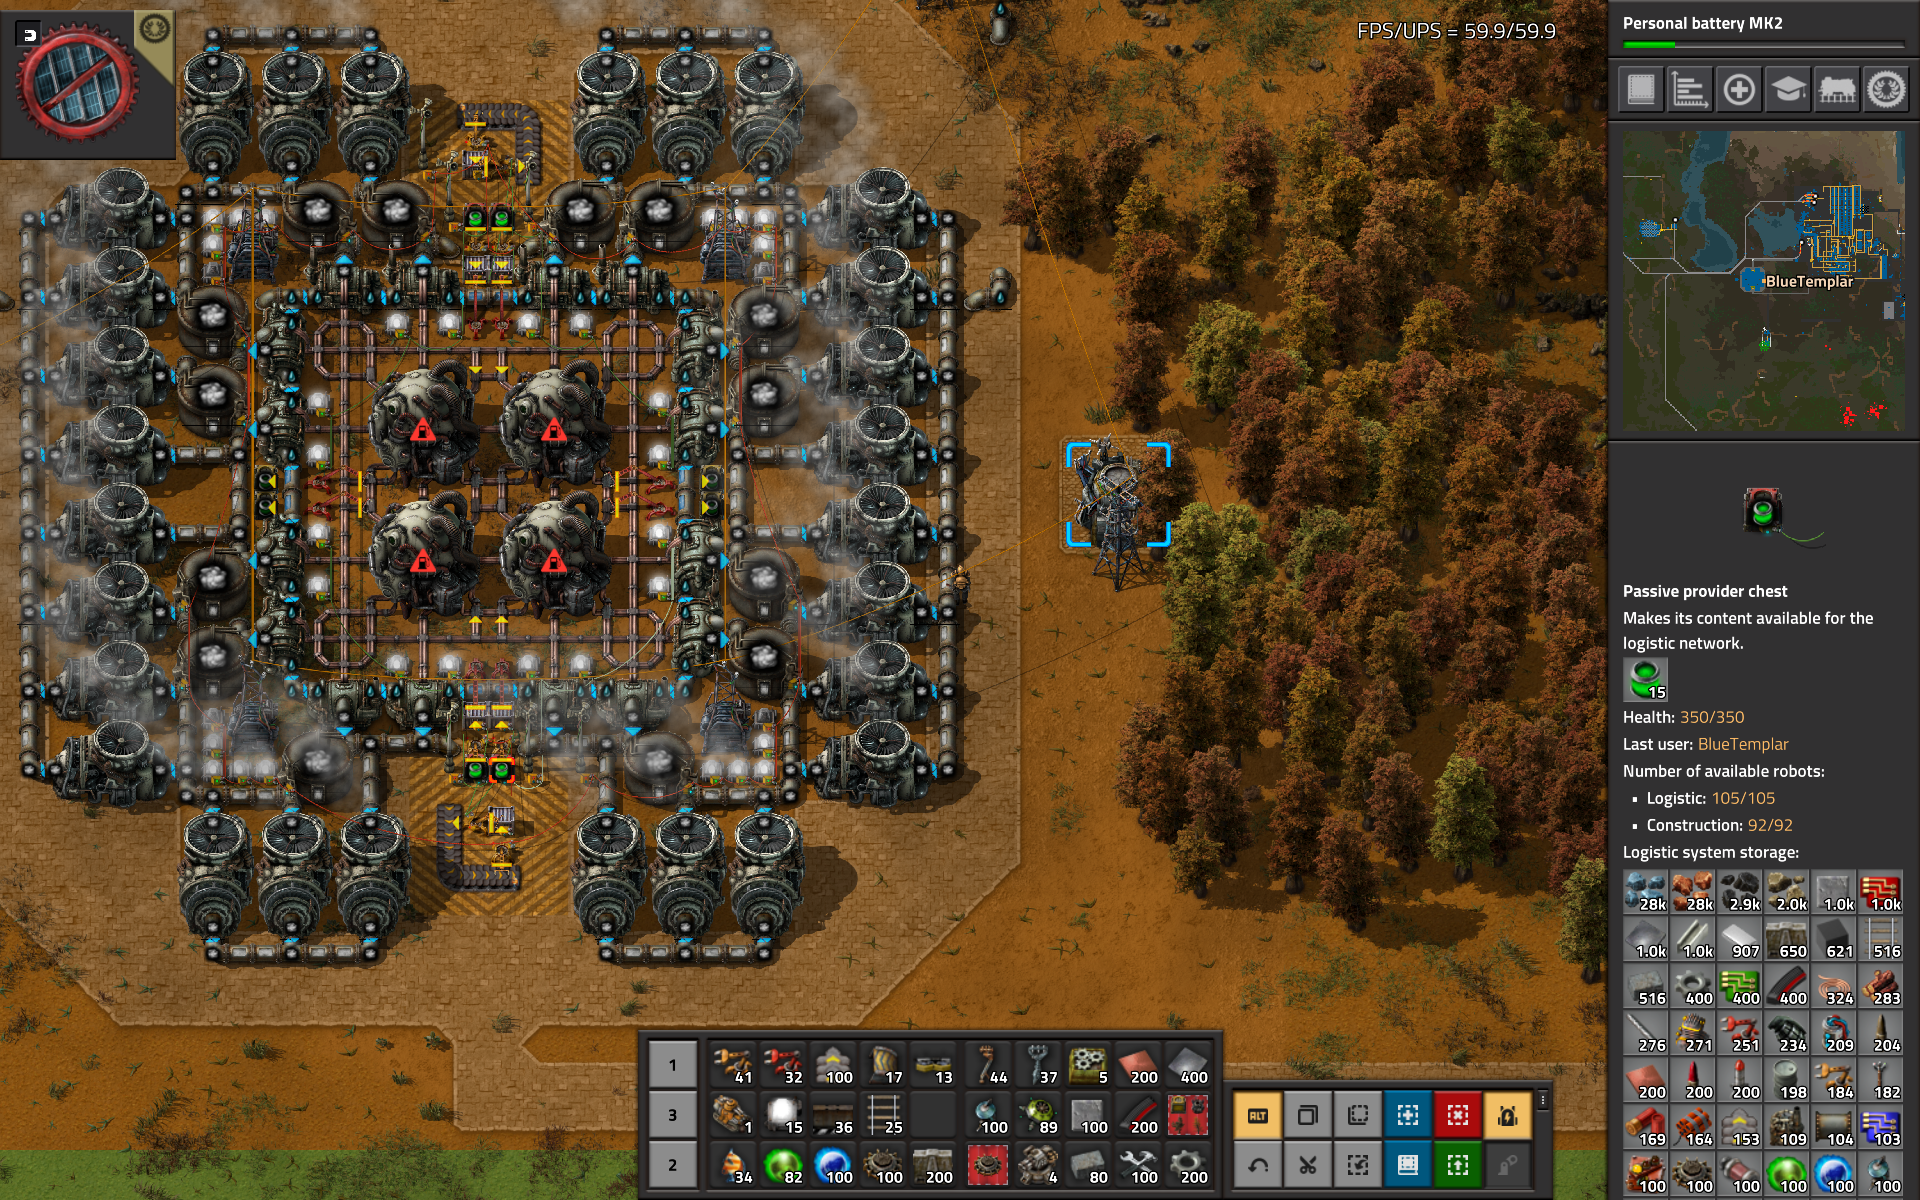 160MW_4nuke_try2_steam&fuel_level.png